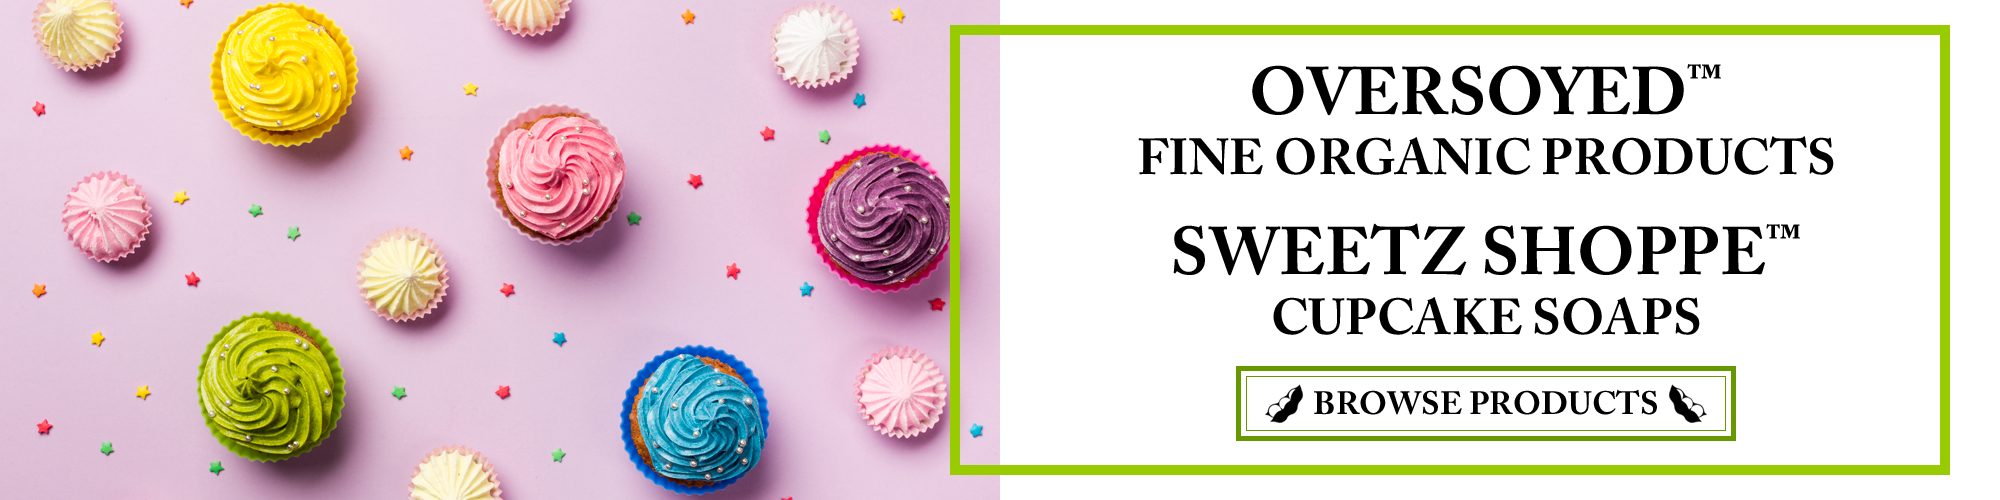 OverSoyed Fine Organic Products - Sweetz Shoppe™ Cupcake Soaps